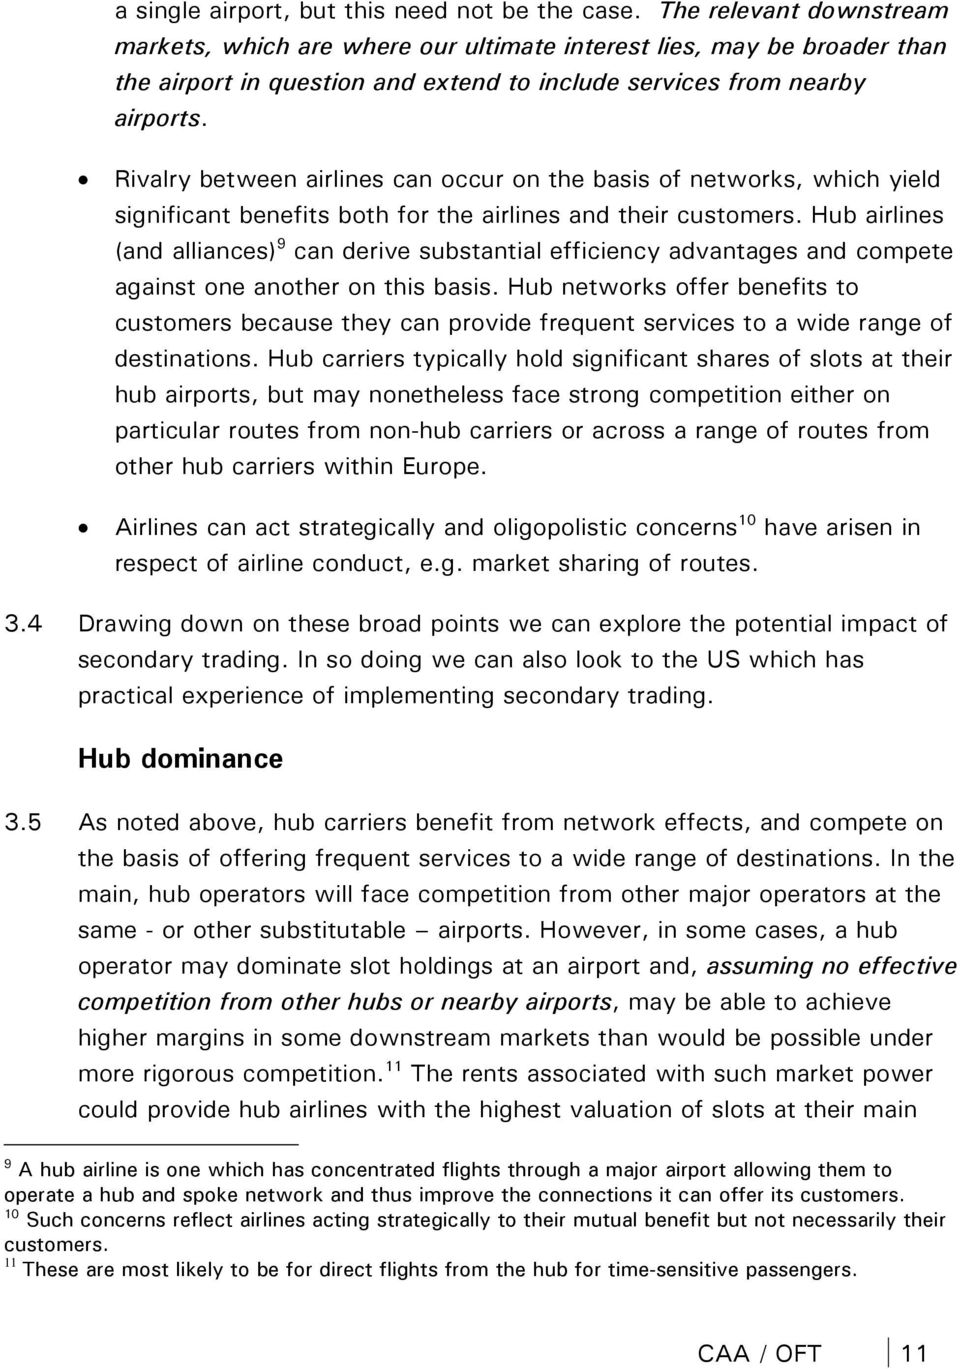 Rivalry between airlines can occur on the basis of networks, which yield significant benefits both for the airlines and their customers.